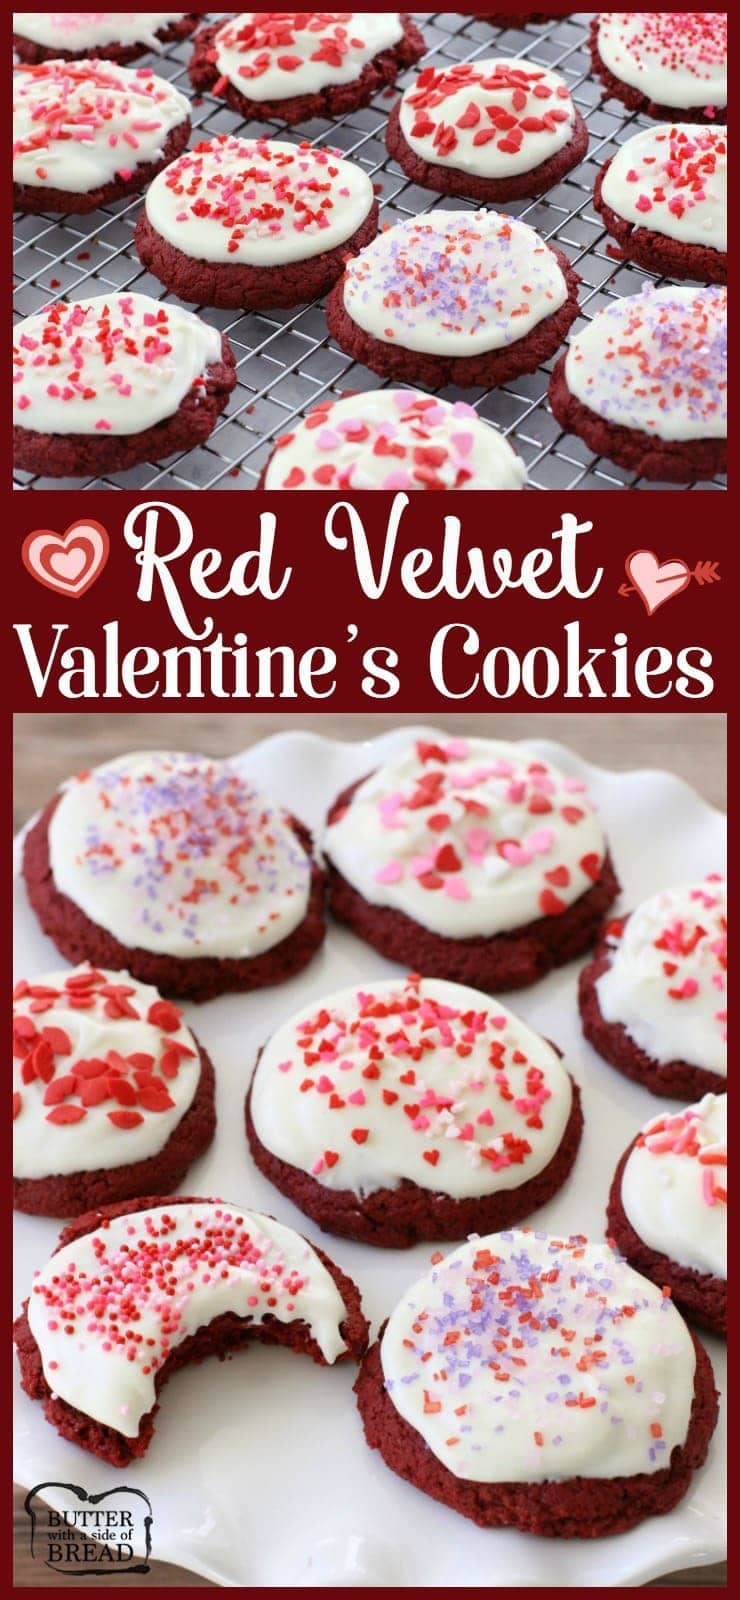 Red Velvet Valentines Cookies - Butter With A Side of Bread